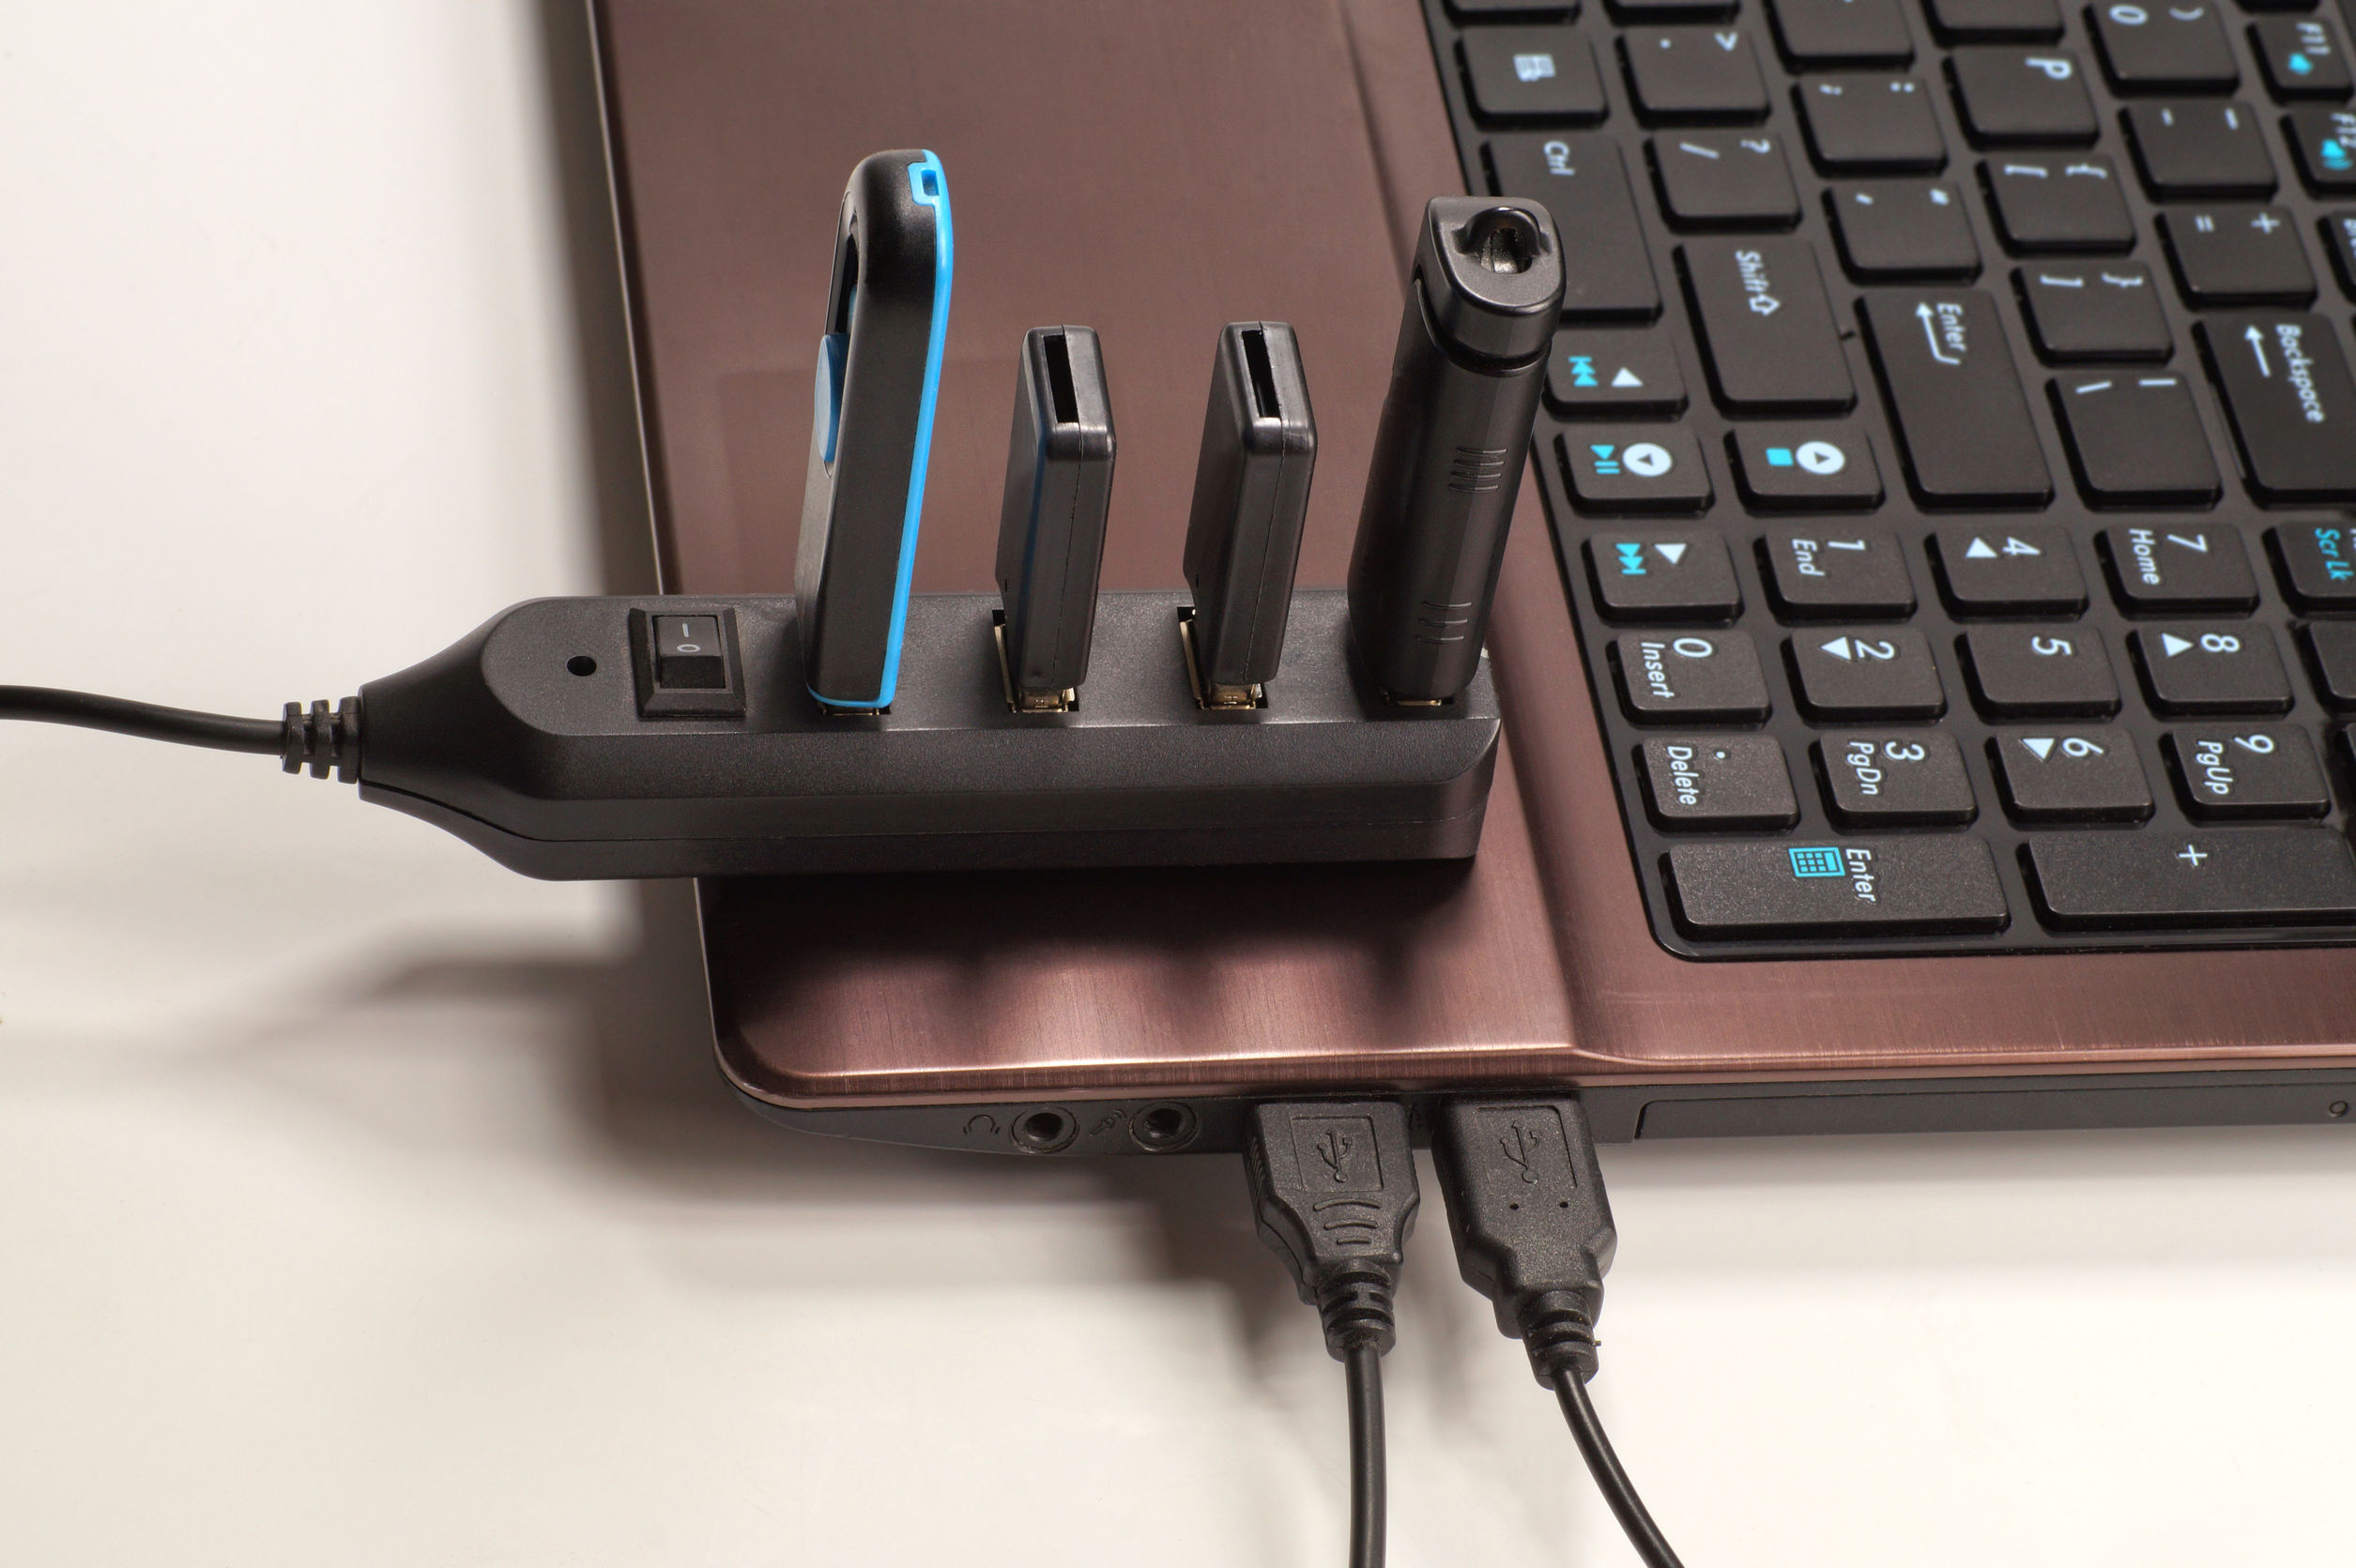 No sockets. Fully used USB hub (each device has a device plugged